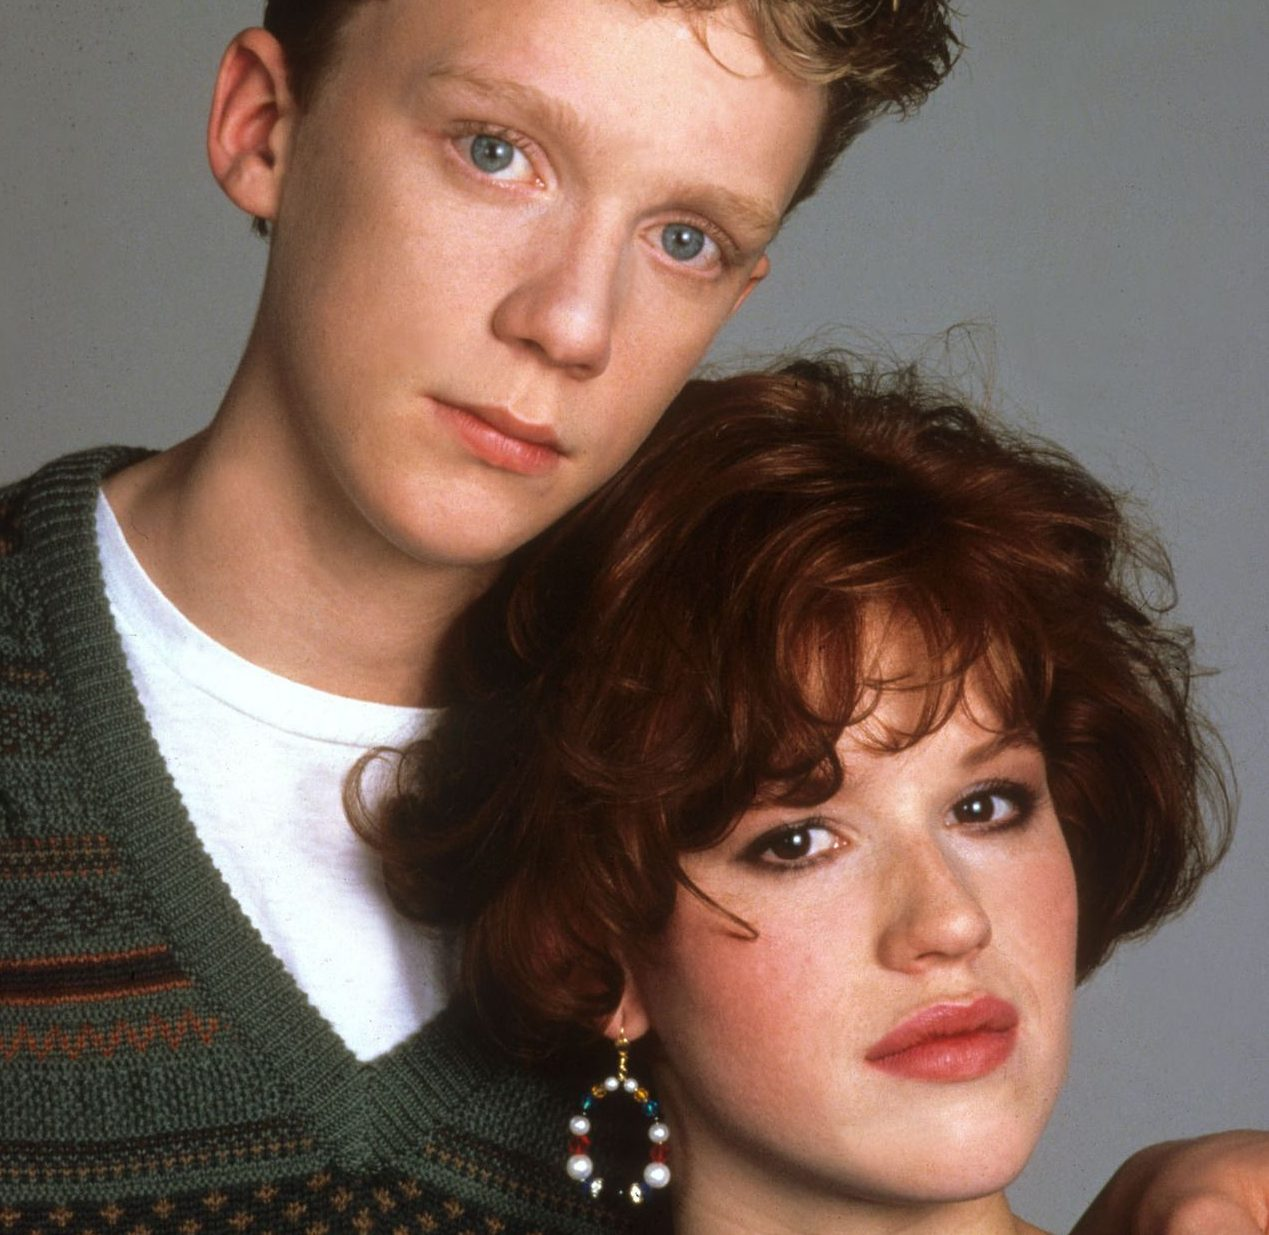 9bed74d1694d1d68231a9277713c5cd9 e1607421040884 20 Facts About Sixteen Candles That Really Take The Cake